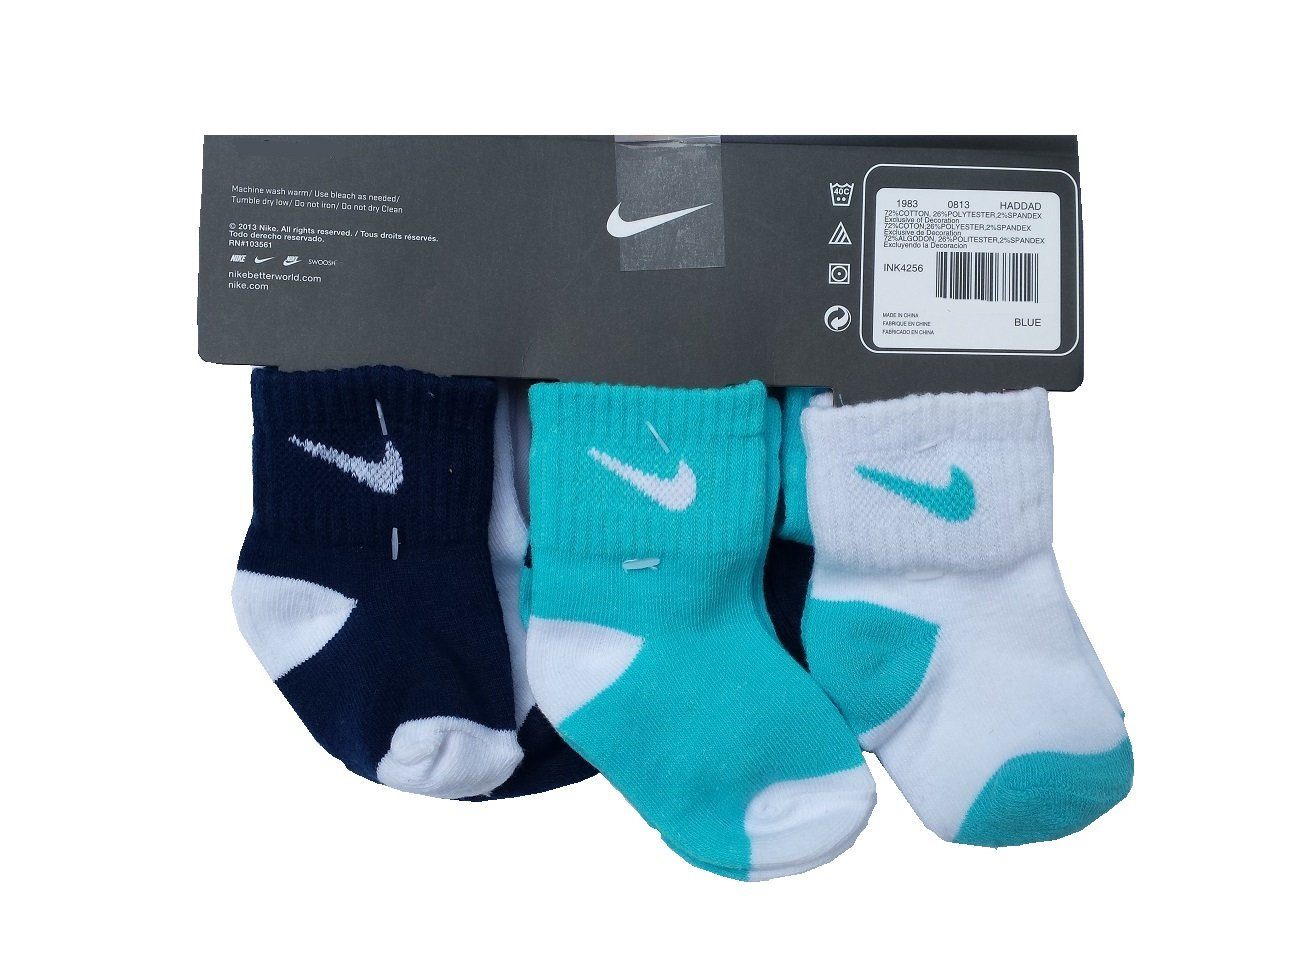 Nike Toddler Boy 6 Pairs/Pack Cotton Socks, 6-12 Months, Navy/Blue/White